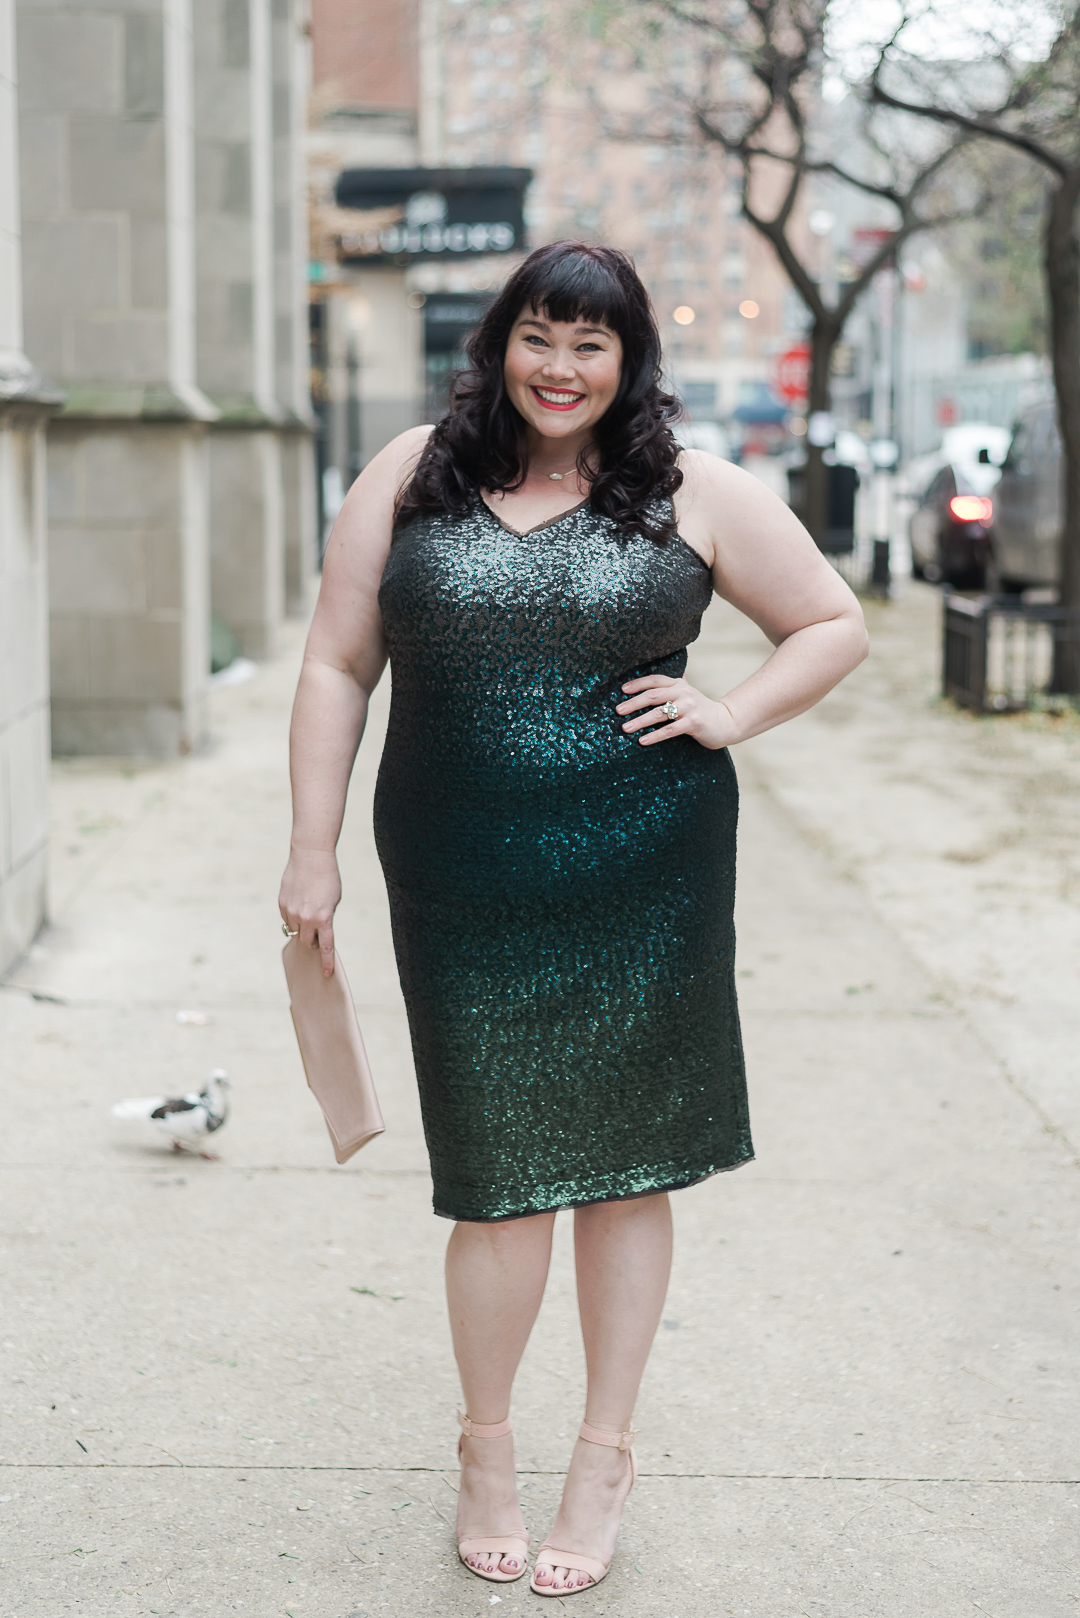 The Emerald Edit: 5 Emerald Green Plus Size Pieces from Macy's